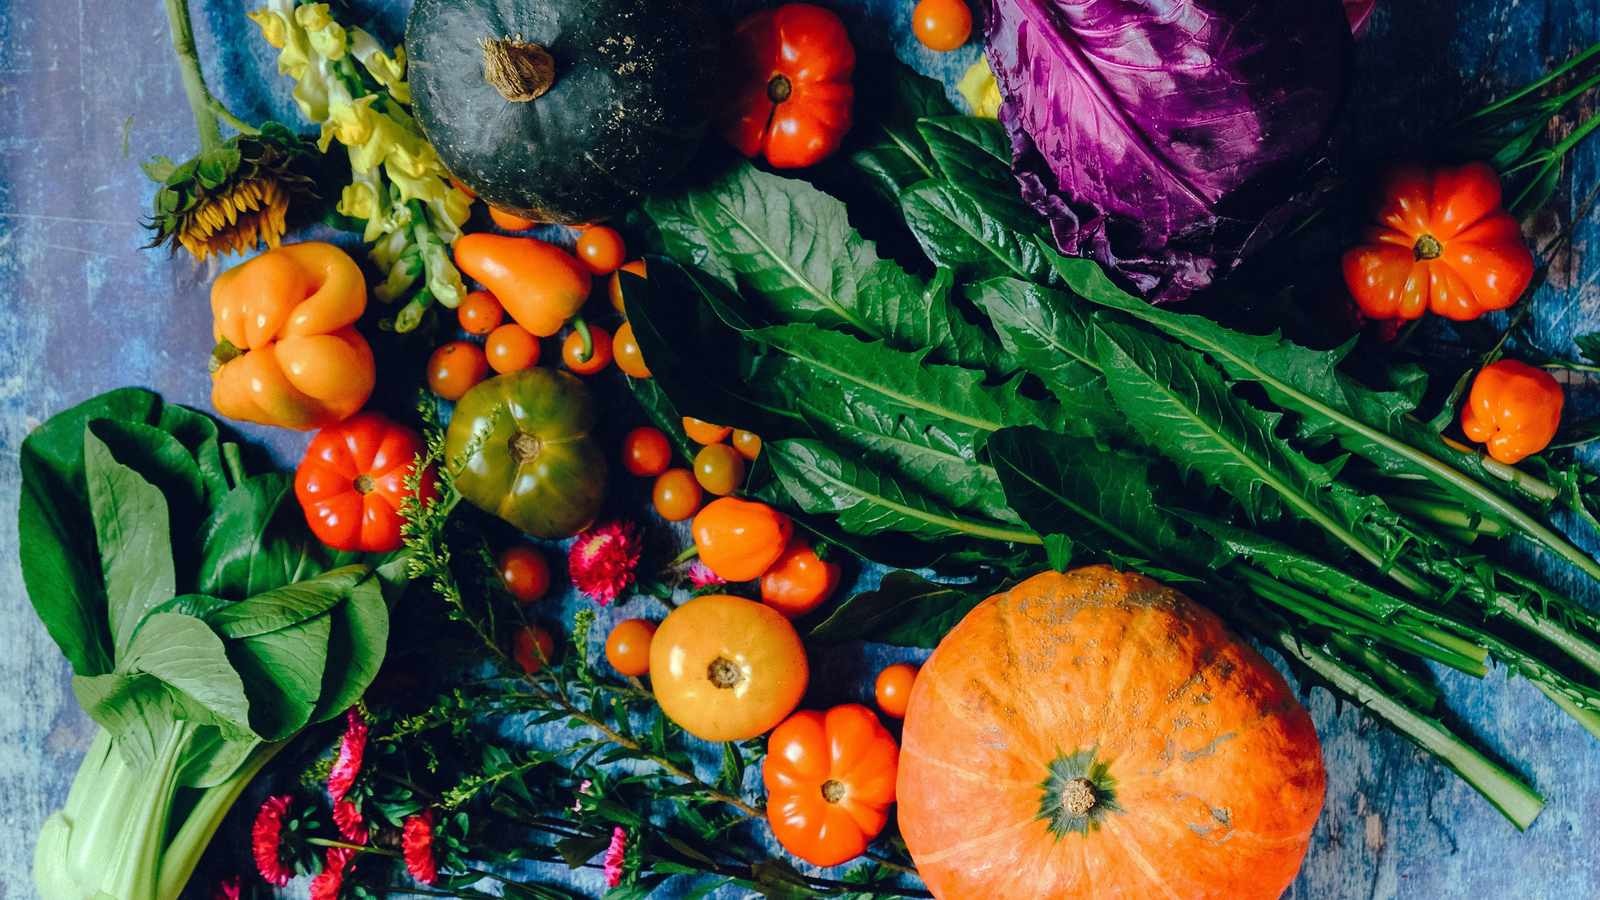 Growing a Vegetable Garden Might Be Just What You Need During the Coronavirus Crisis